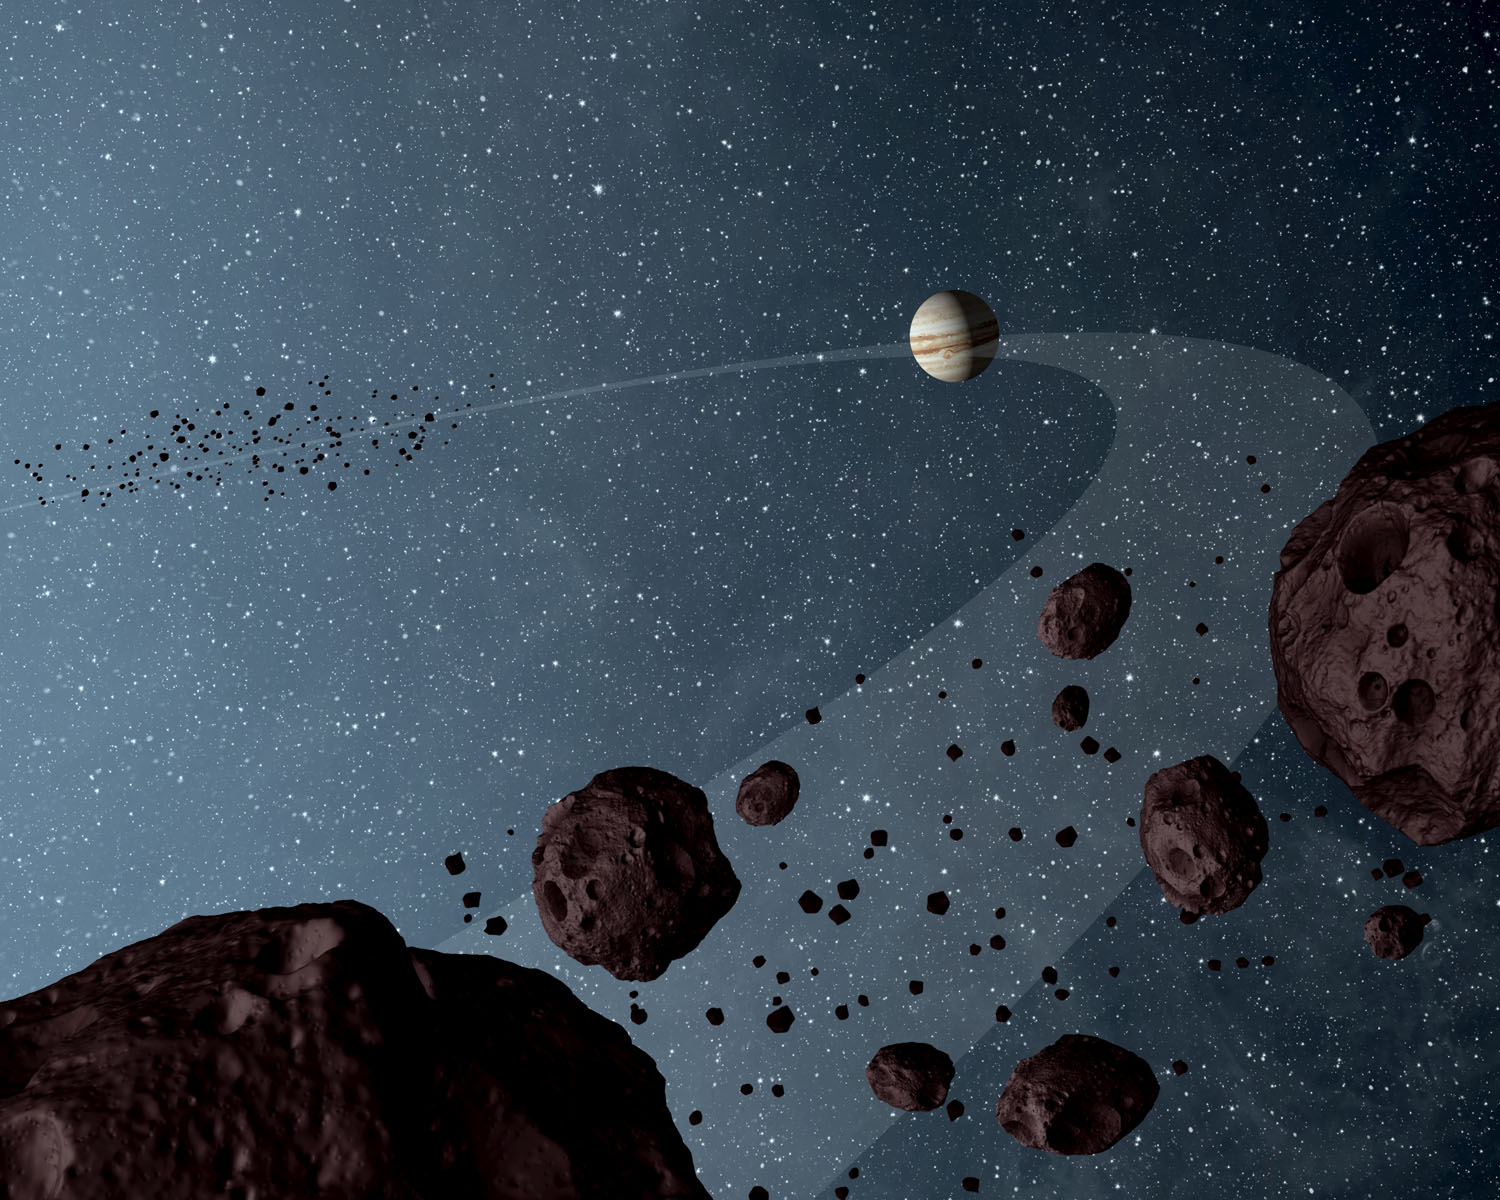 asteroids-that-lap-the-sun-in-the-same-orbit-as-Jupiter-are-uniformly-dark-with-a-hint-of-burgundy-color